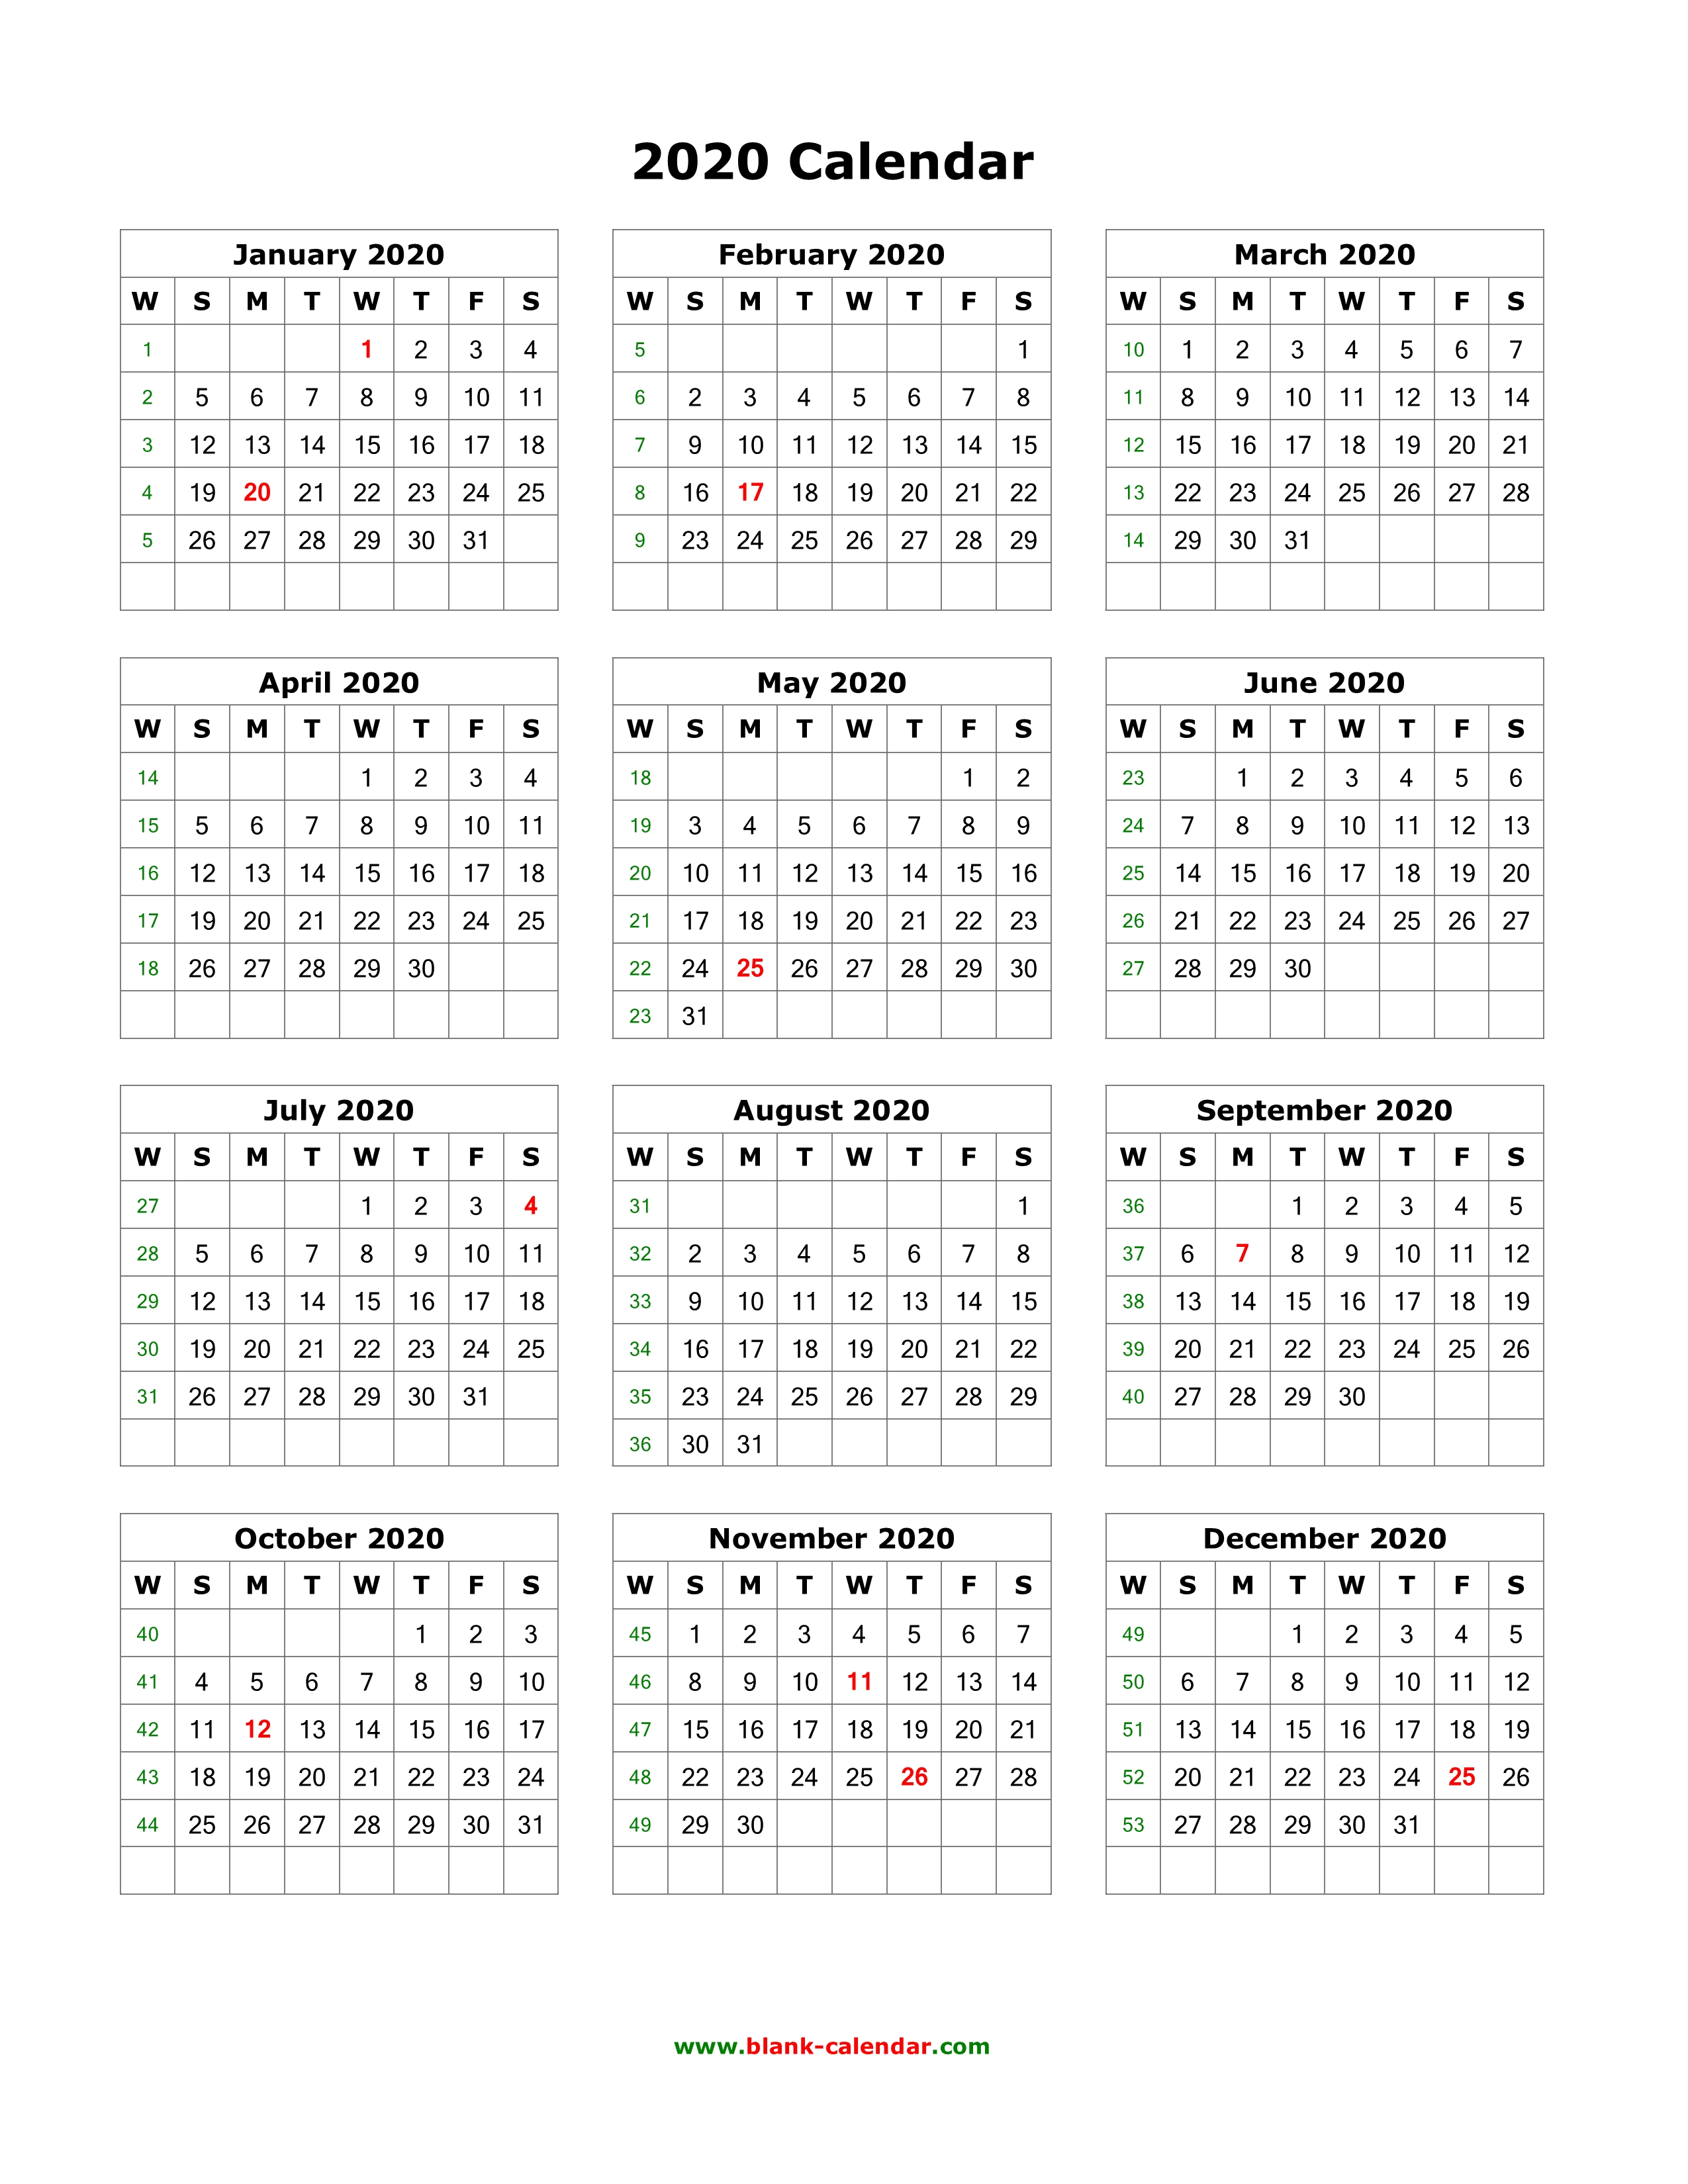 Blank Calendar For 2020 Download Blank Calendar 2020 (12 months on one page, vertical)